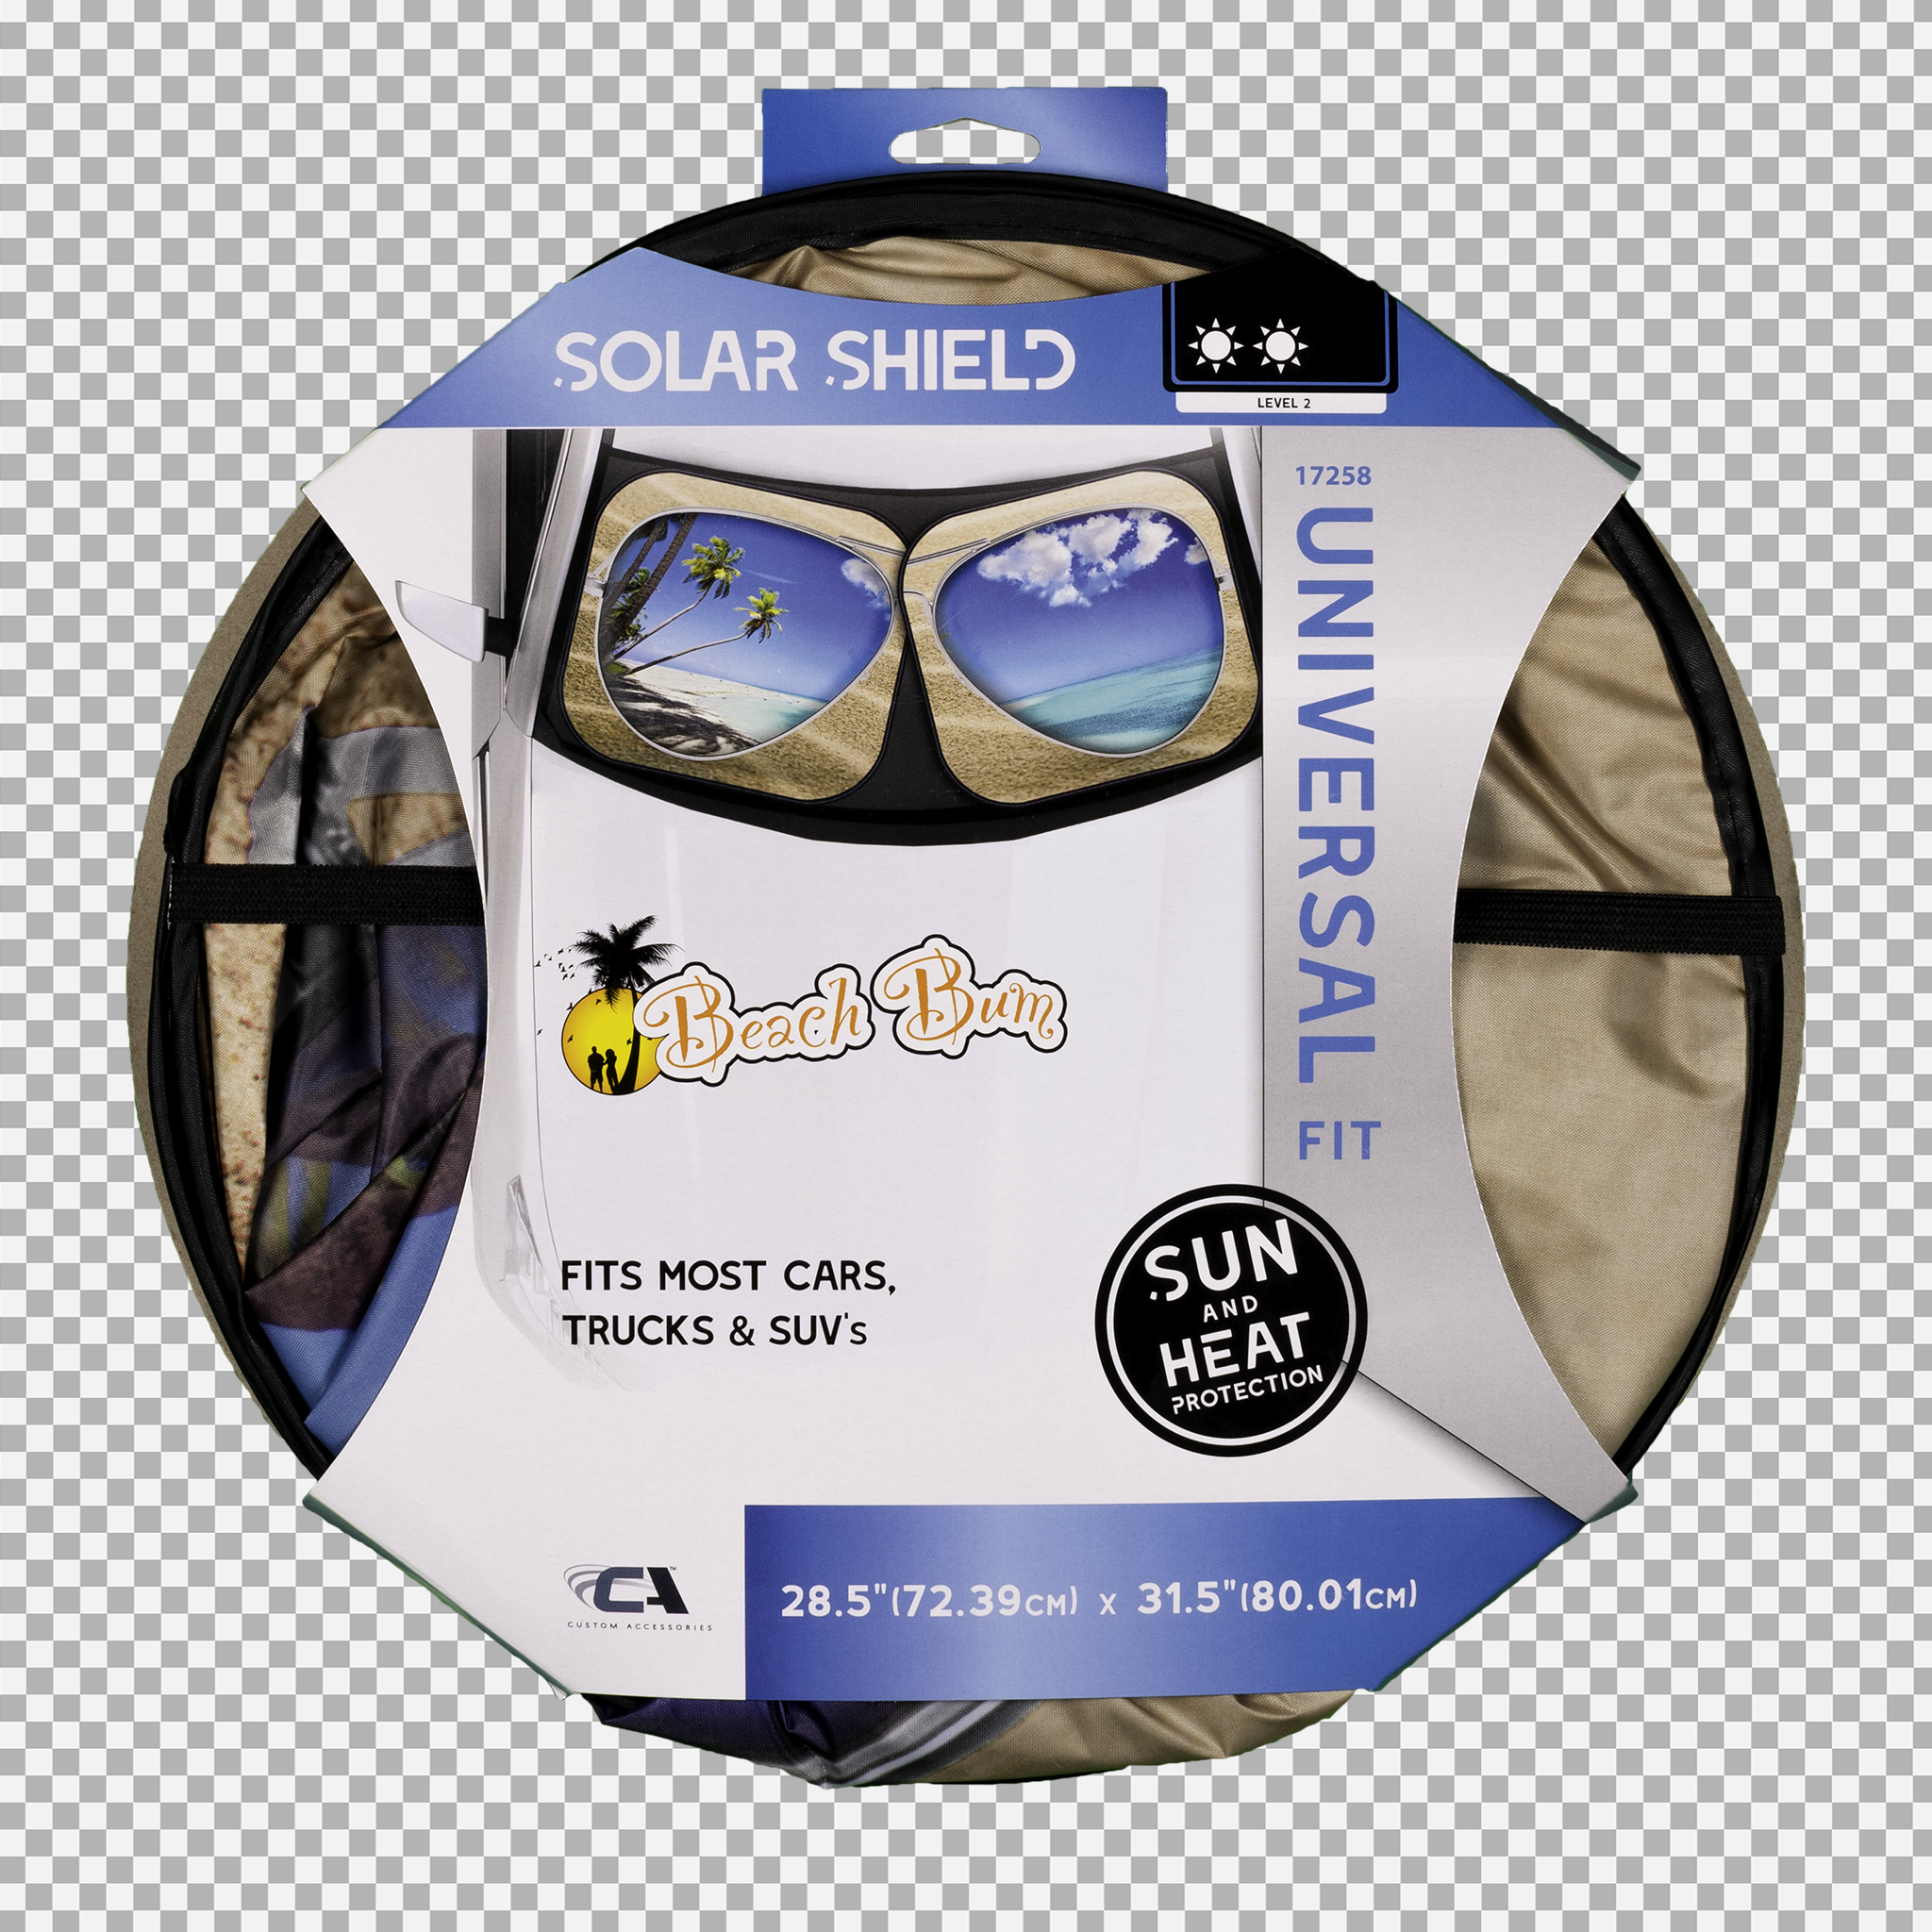 Beach Bum Solar Shield - Pair Packaging Front (Transparent Background)